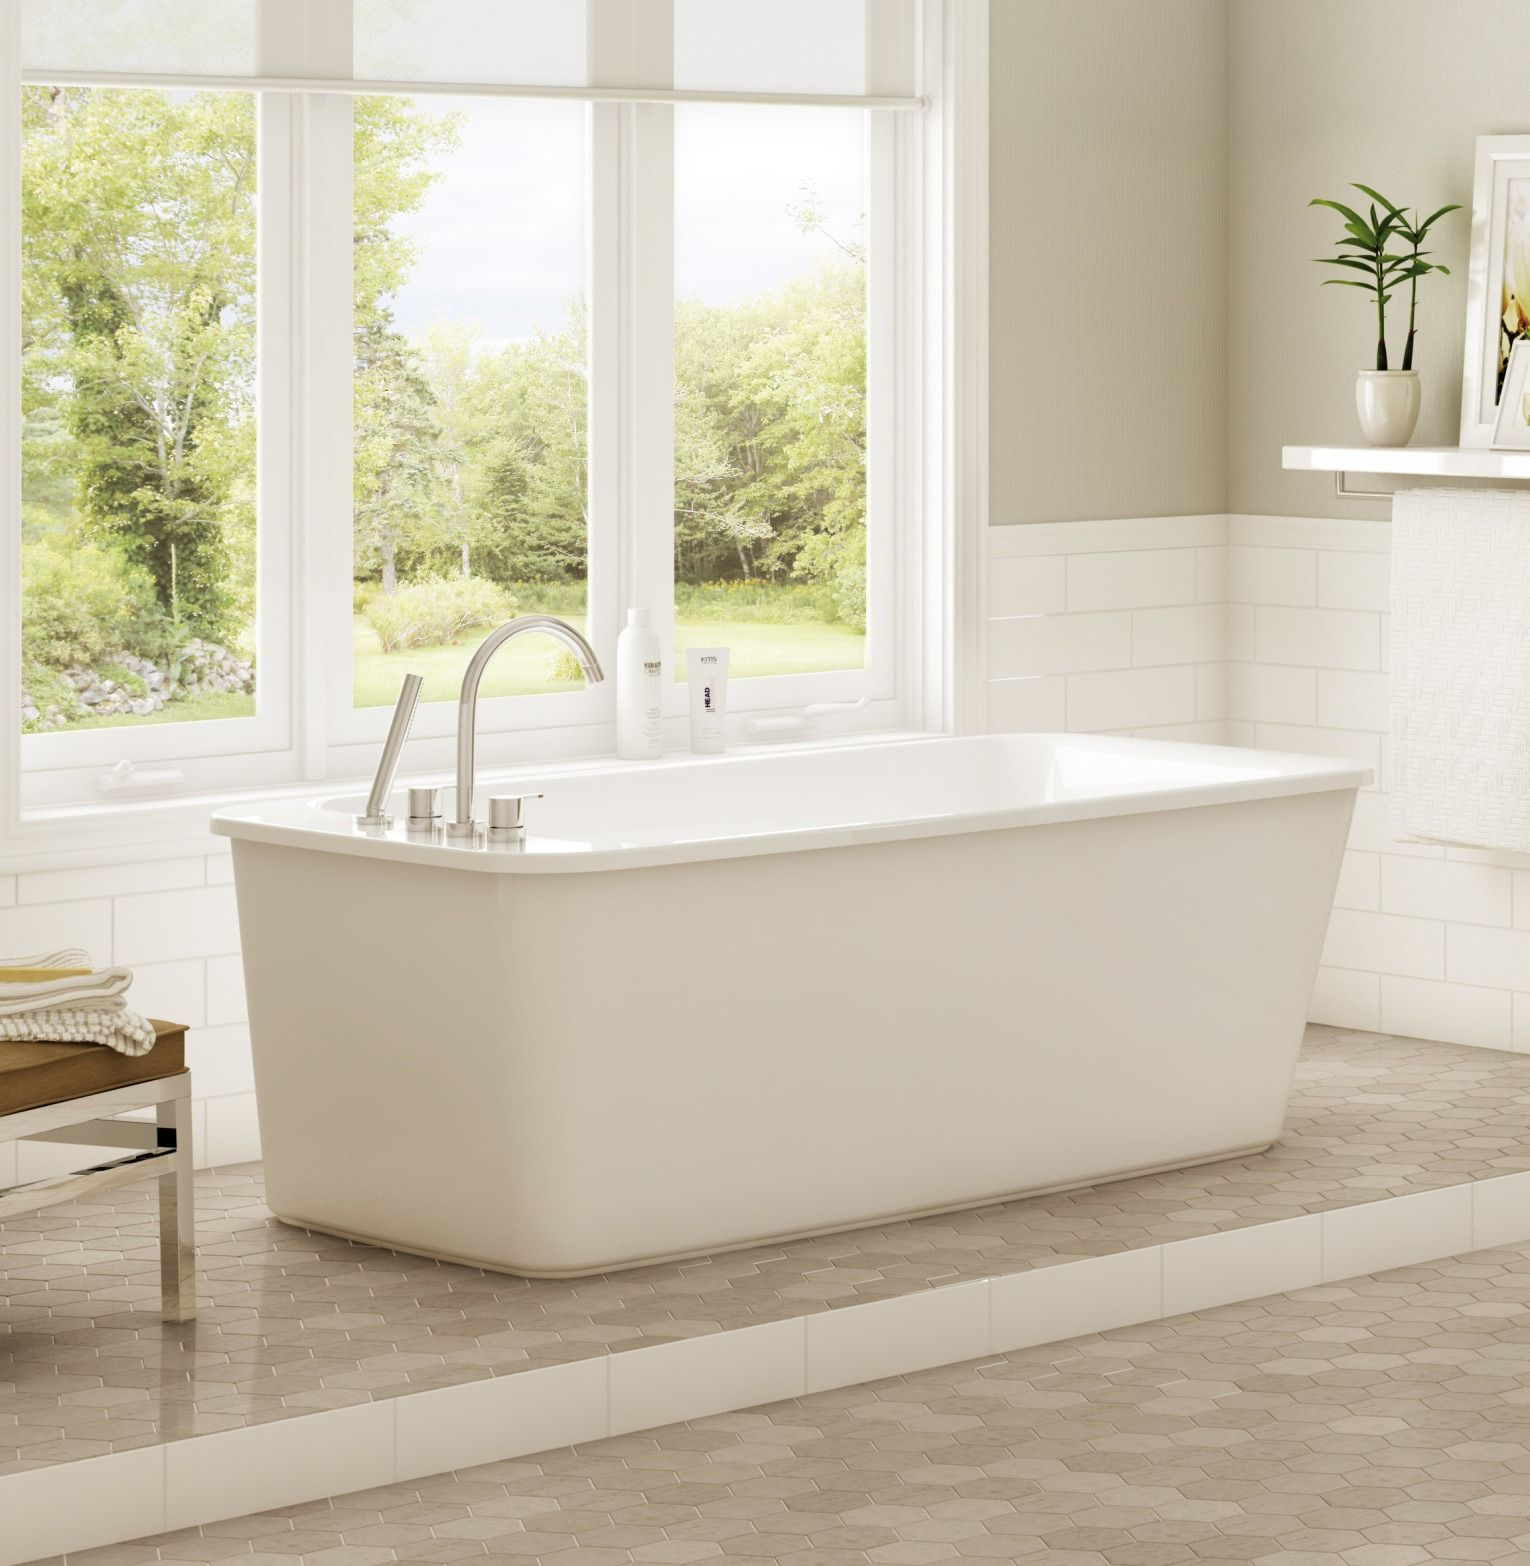 Large Yet Luxurious, The Maax® Lounge Freestanding Acrylic Bathtub Comes In  Four Different Colors So You Can Create A Chic Look That Suits Your  Bathroom ...